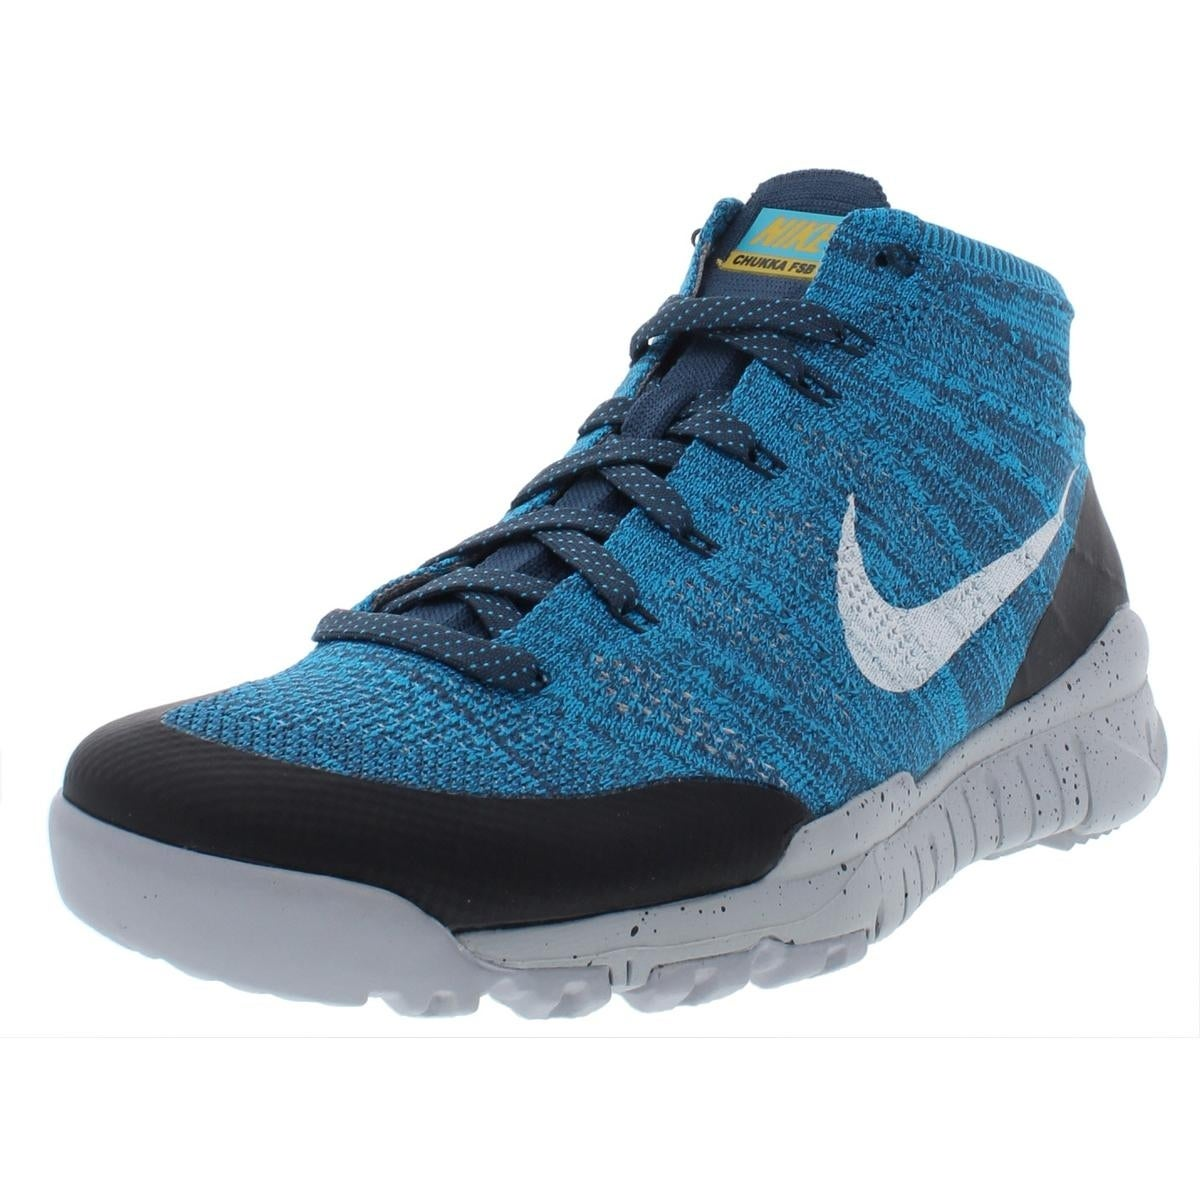 new concept 0e7f4 f07ce Shop Nike Mens Flyknit Trainer Chukka FSB Athletic Shoes Running Mid-Top -  Free Shipping Today - Overstock - 27809522